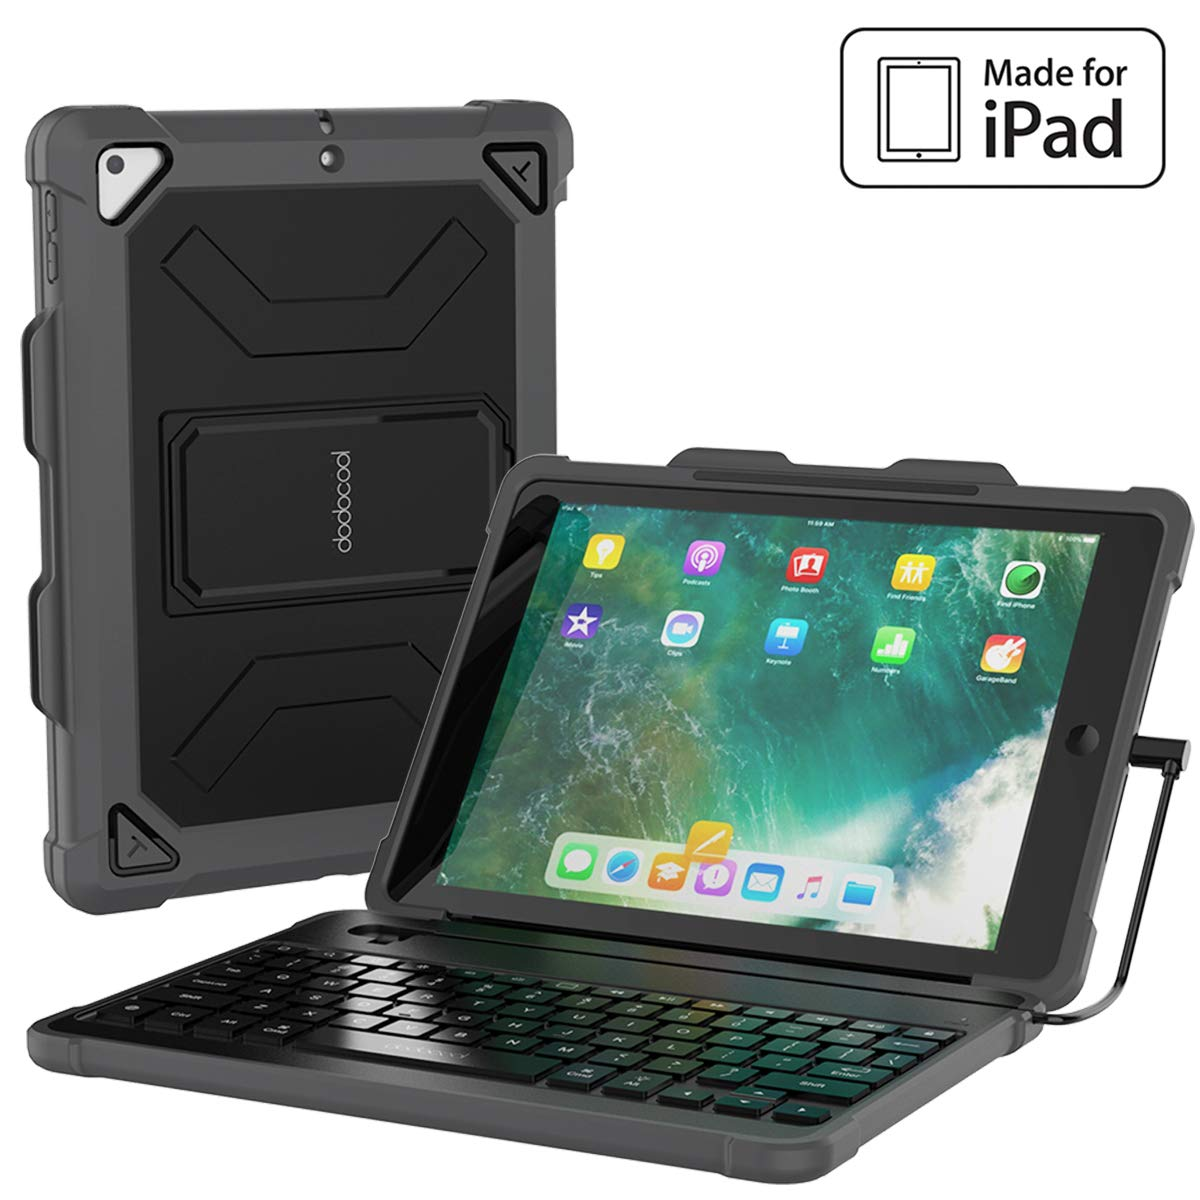 dodocool Keyboard Case for iPad 9.7 2018 6th Generation Cases with Keyboard [MFi Certified] with Stable Wired Connection, Pencil Holder, Shortcuts, Auto Sleep/Wake, Detachable Backlit Keyboard